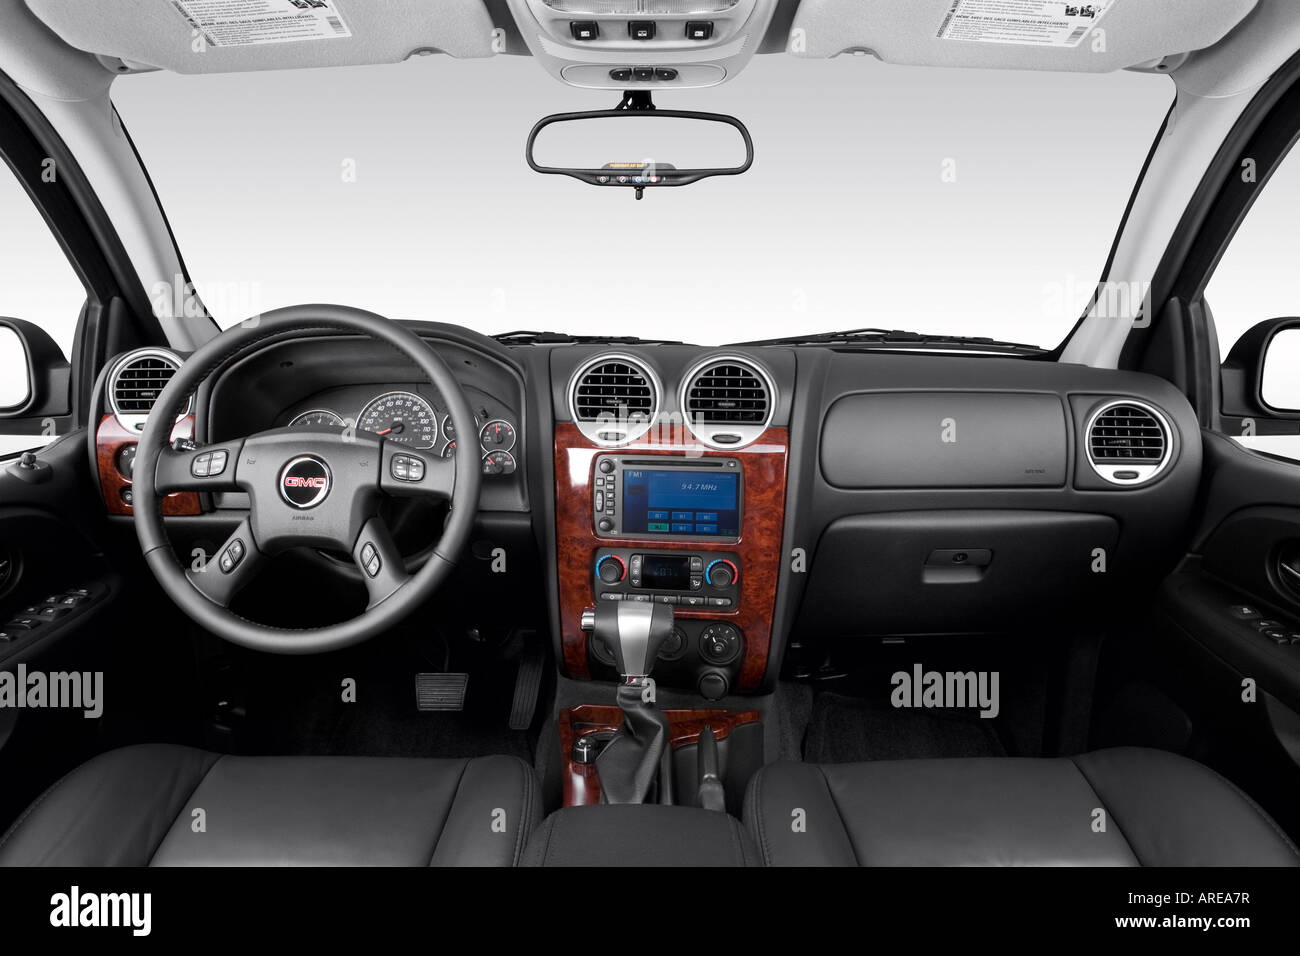 hight resolution of 2006 gmc envoy xl slt in black dashboard center console gear shifter view